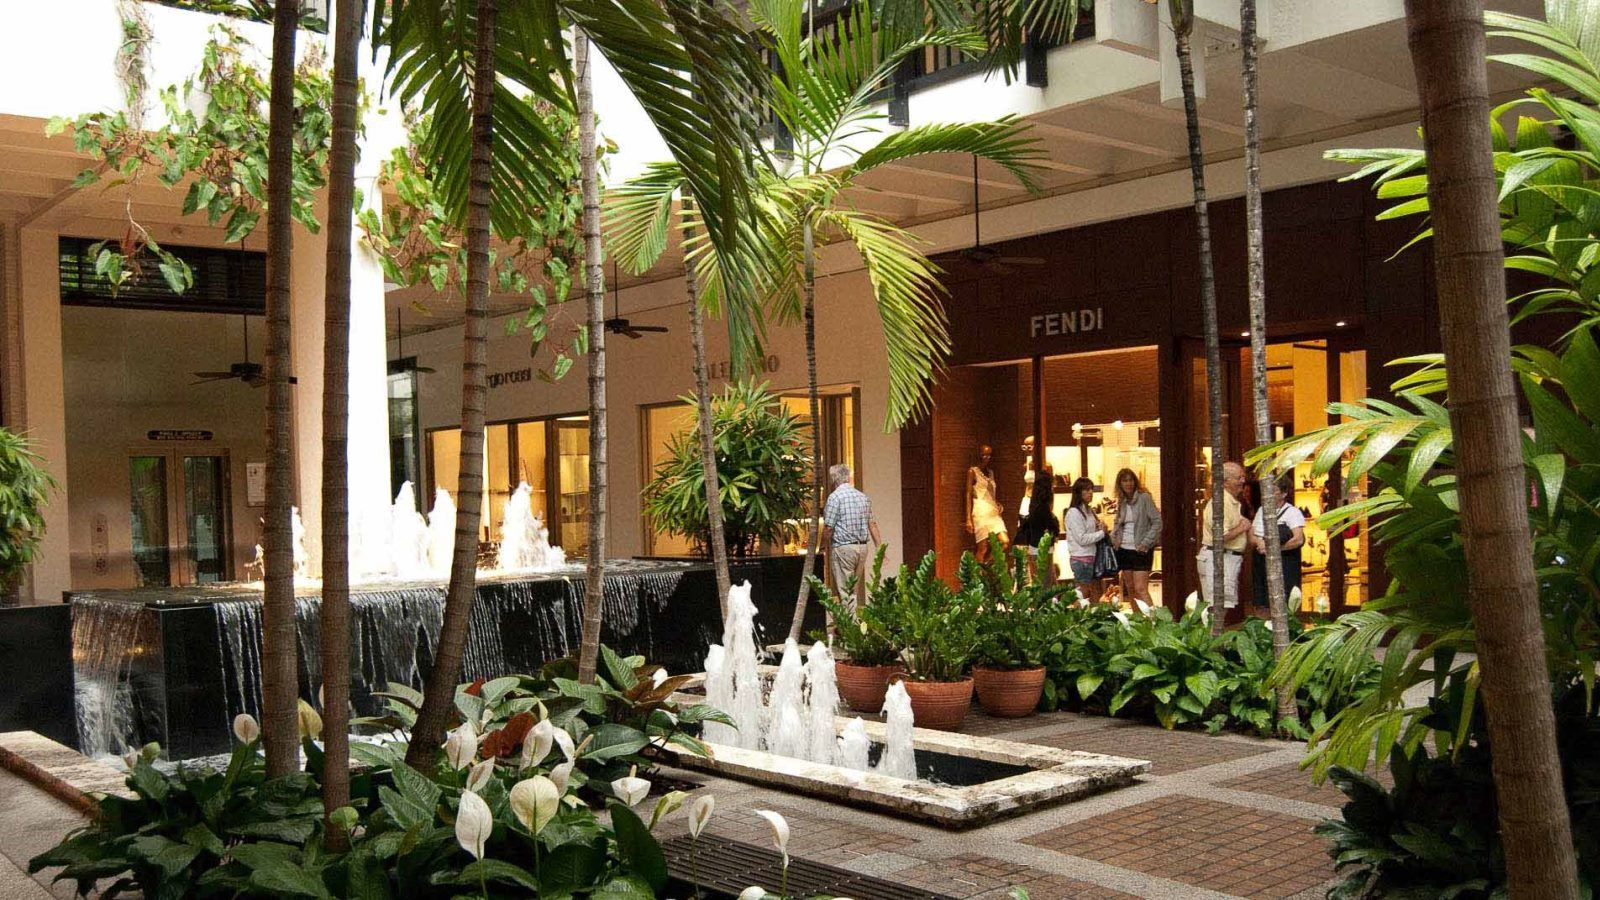 The St. Regis Bal Harbour Resort | Bal Harbour Shops